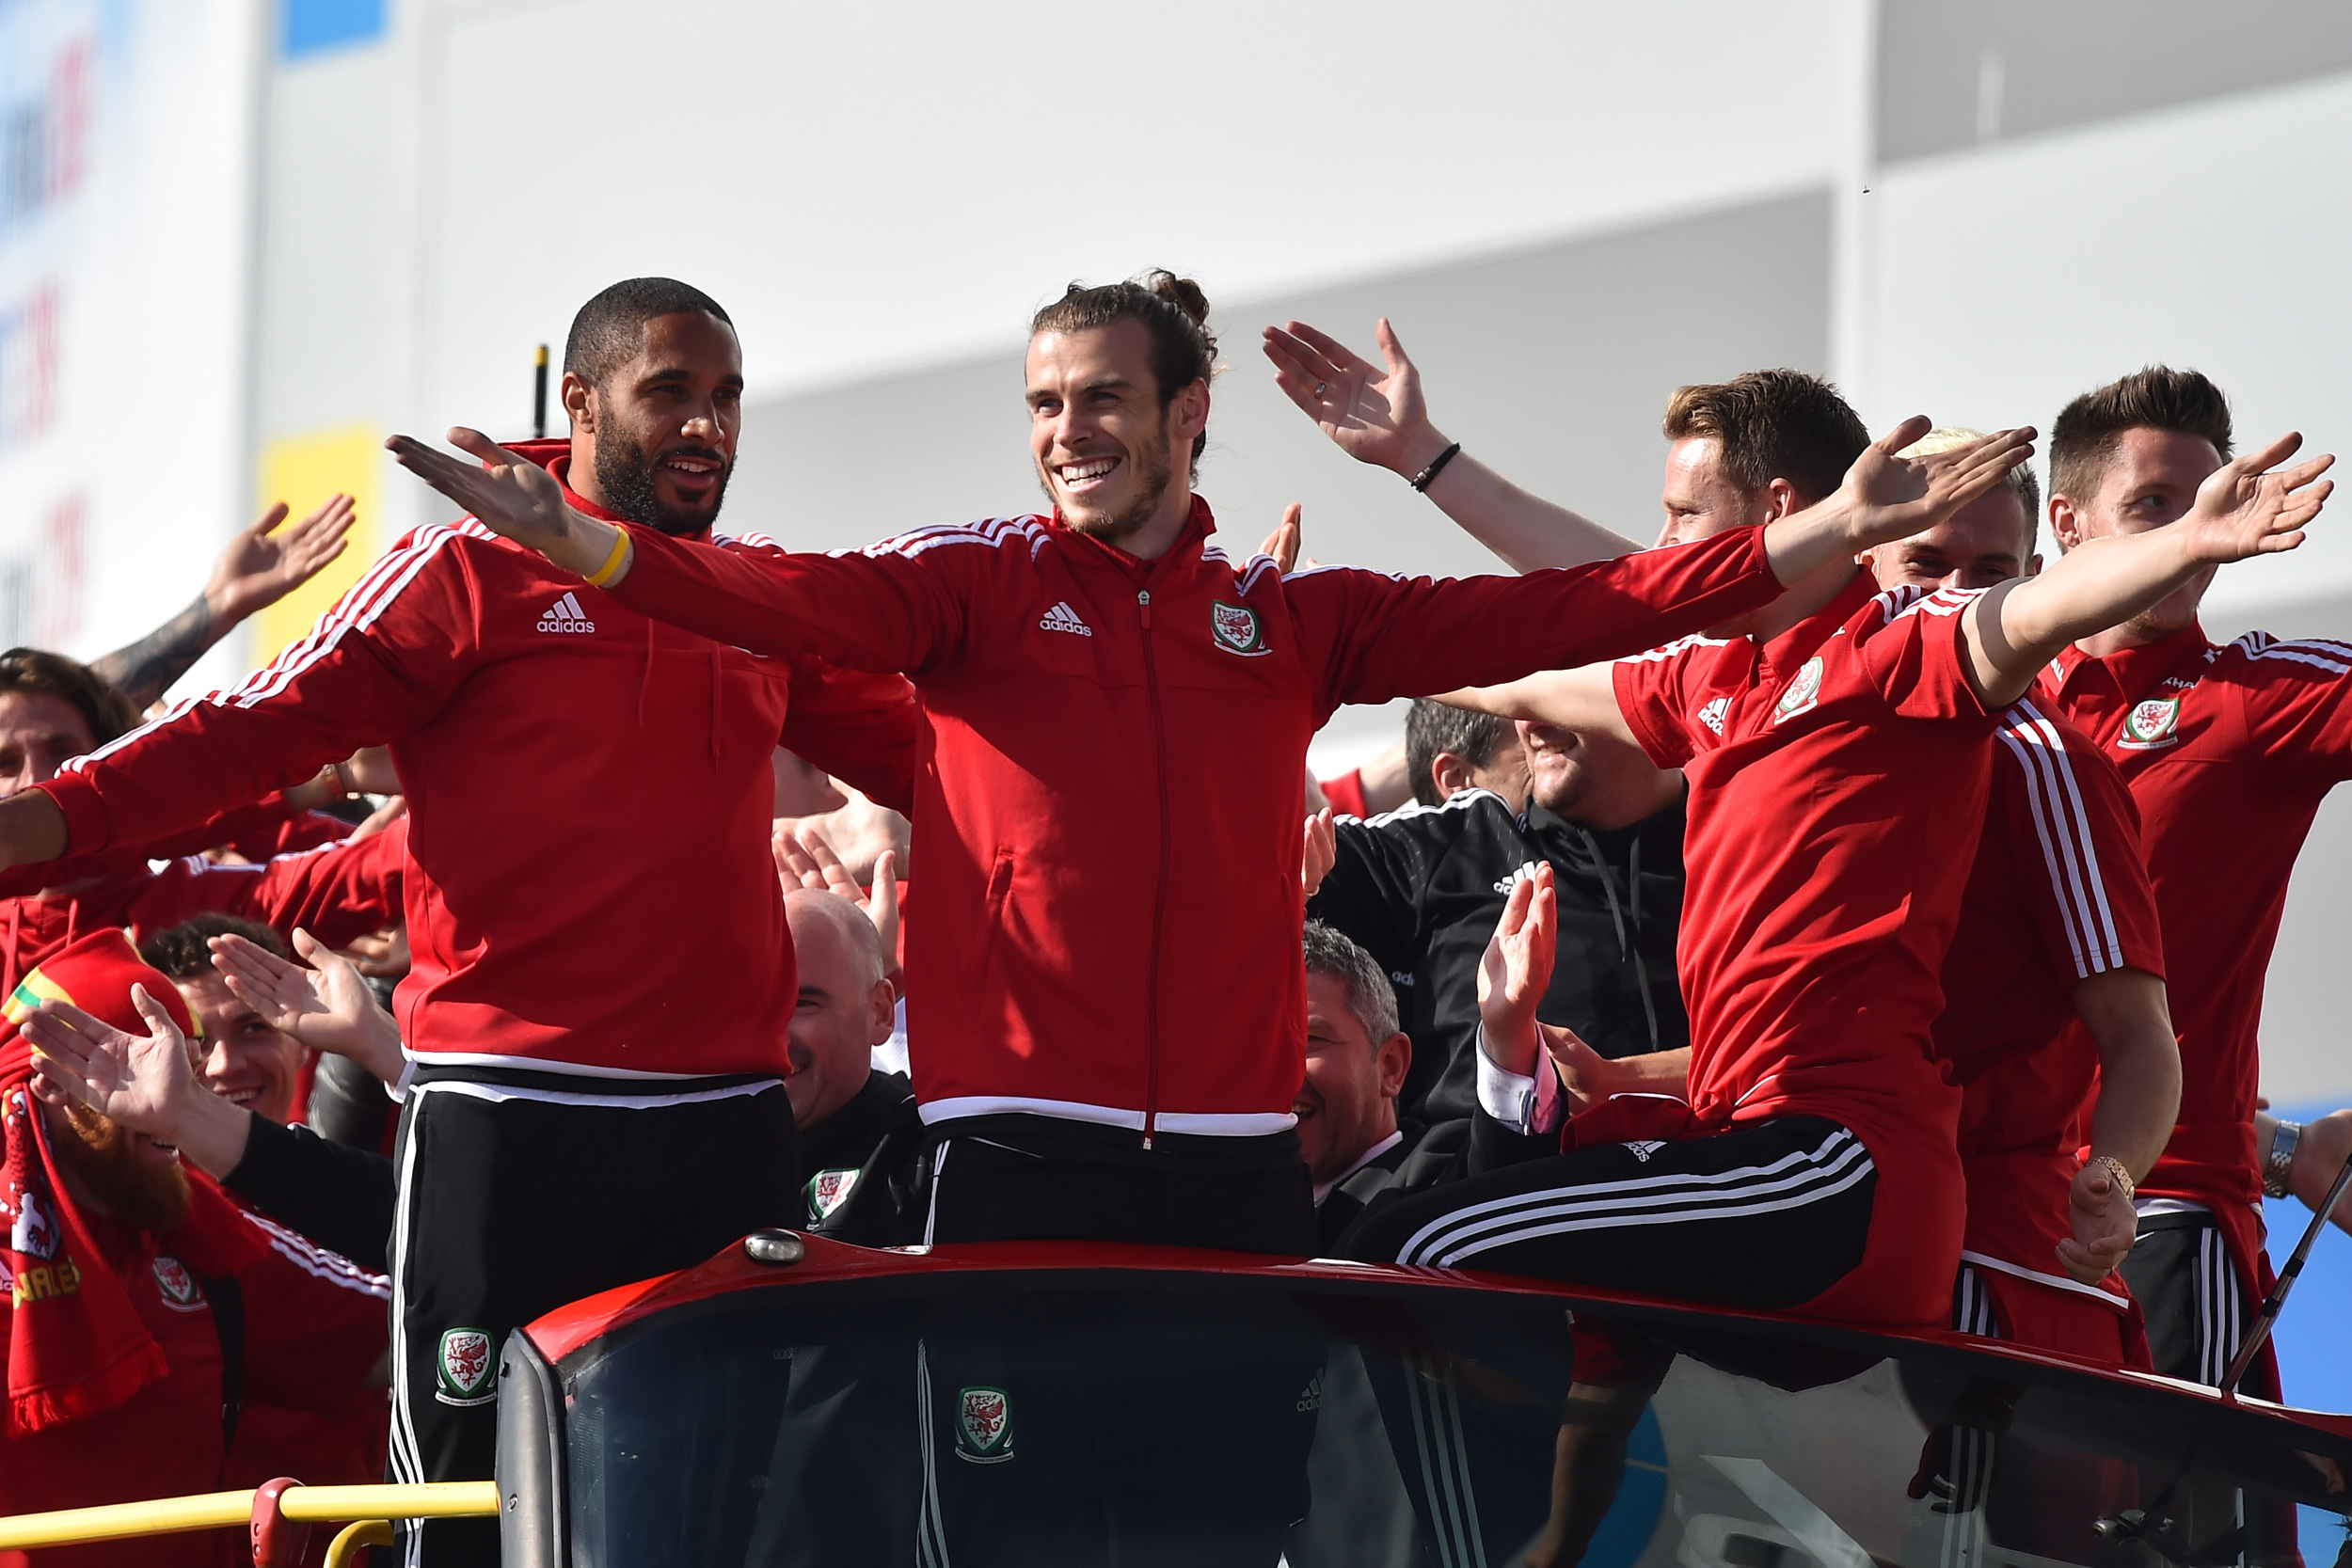 CARDIFF, WALES - JULY 08: Wales football players Ashley Williams (Left) with Gareth Bale (Centre) as the open top bus arrives at the Cardiff City Stadium on July 8, 2016 in Cardiff, Wales. The players toured the streets of Cardiff in an open top bus before arriving at the Cardiff City Stadium for an after party for which 33,000 tickets have been sold. Wales historic run in Euro 2016 saw them reach the semi-finals, before being knocked out 2-0 by Portugal at Stade de Lyon in France. (Photo by Matthew Horwood/Getty Images)